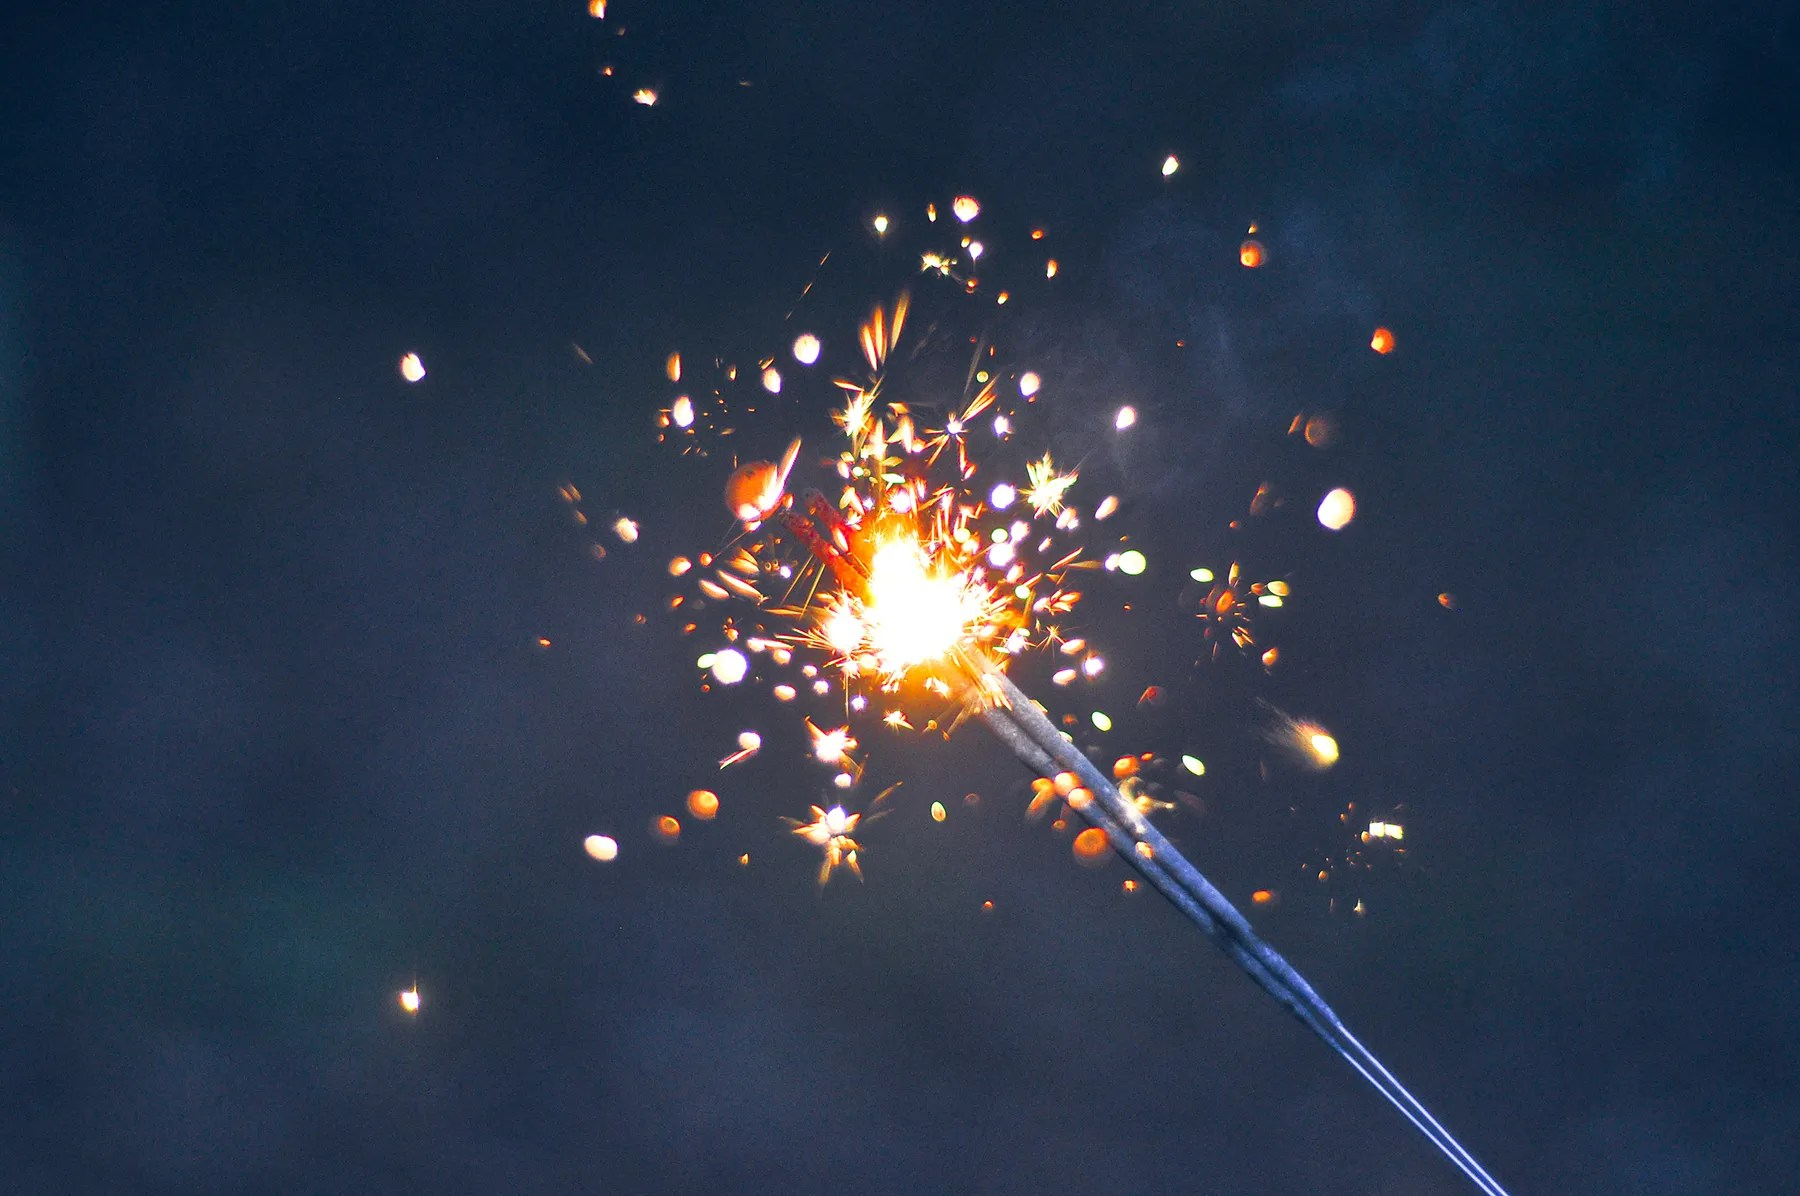 hight resolution of the awesome physics in a simple sparkler